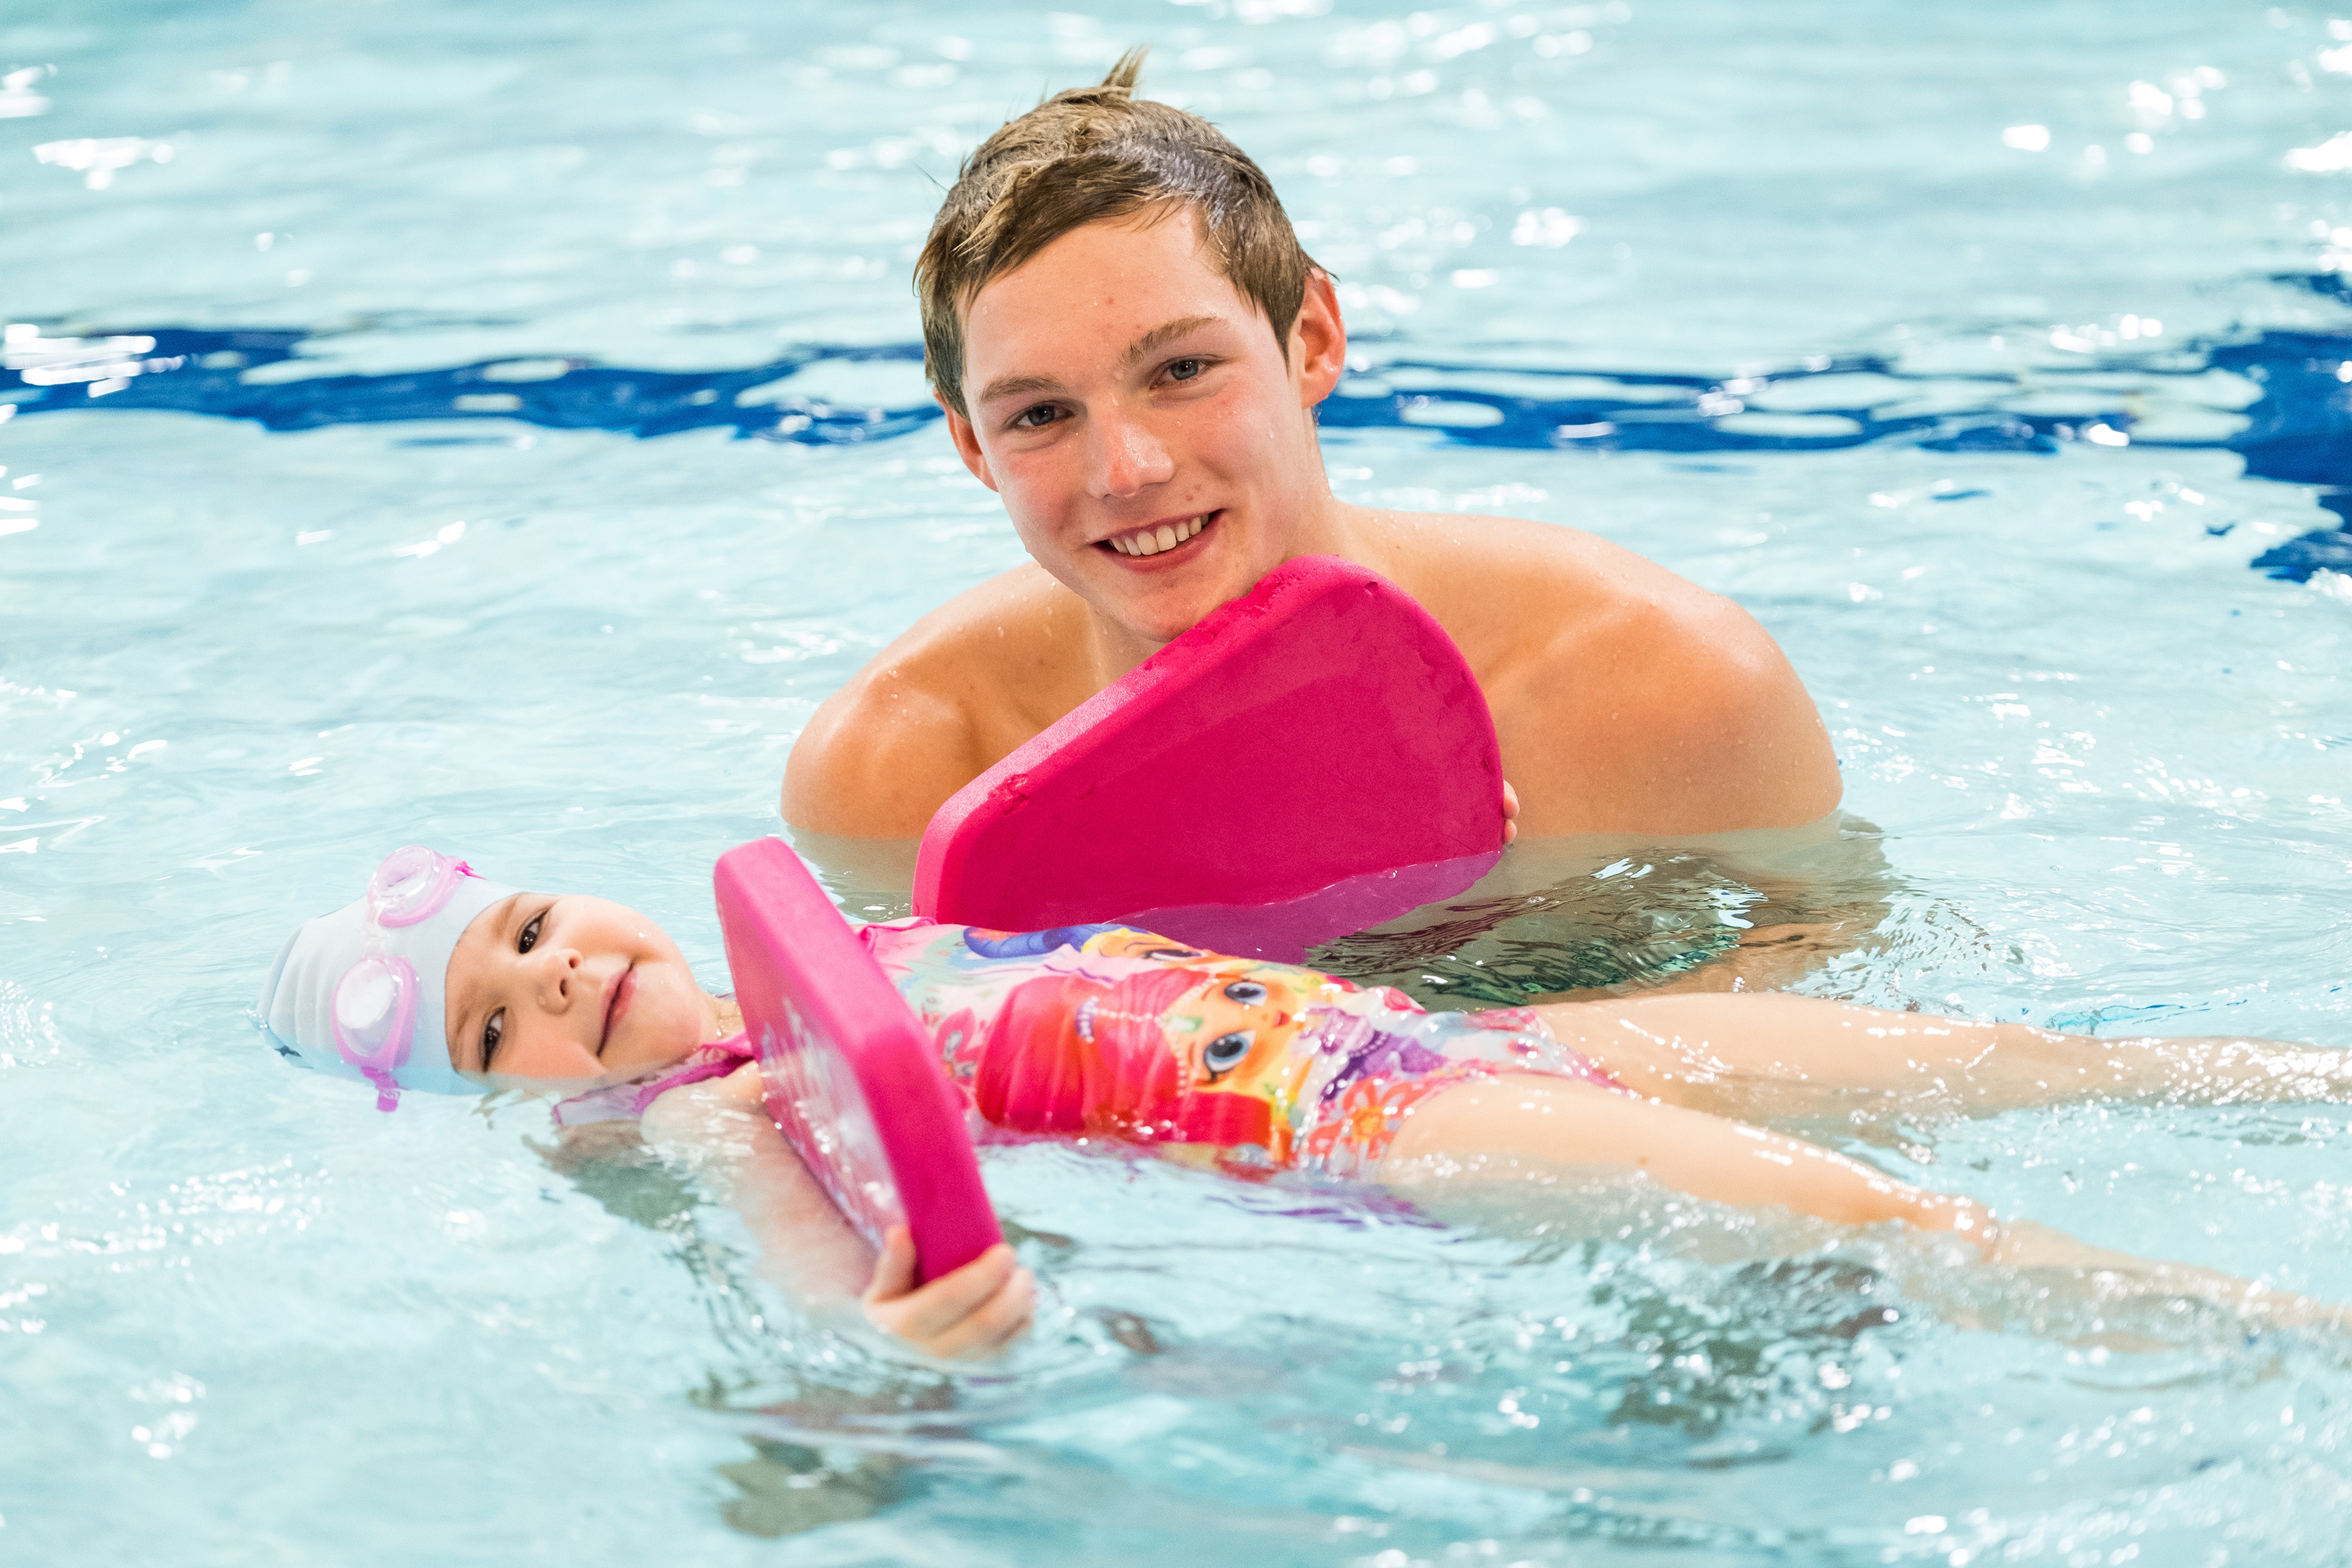 A young swimmer receives swimming lessons from Commonwealth athlete Duncan Scott